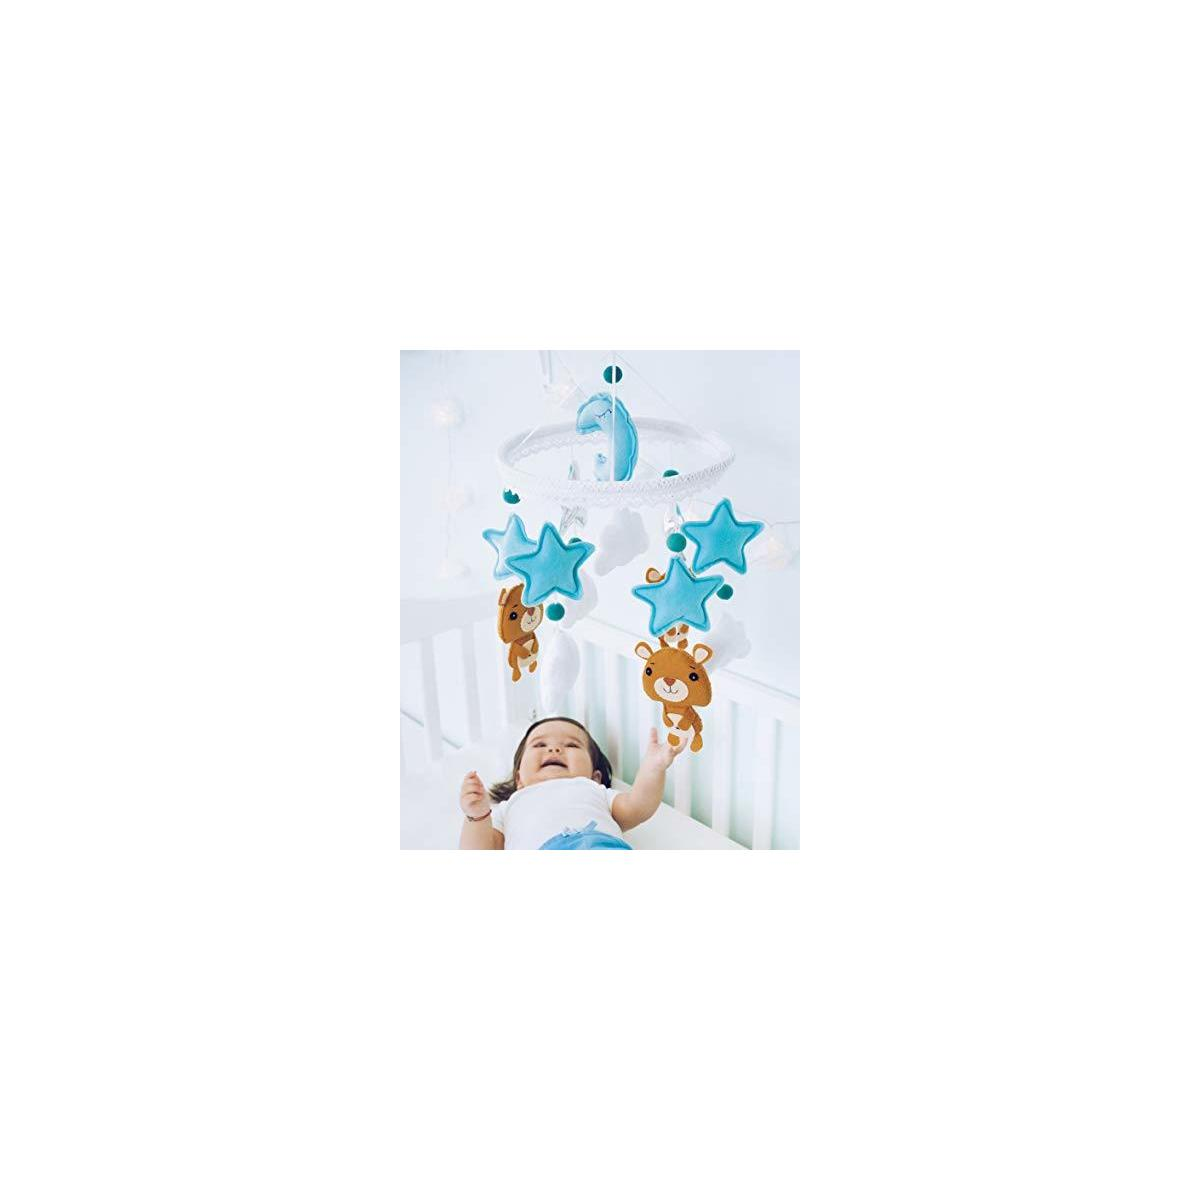 Baby Mobile Felt Nursery Crib Mobile Handmade Baby Shower Gift for Boys Color: Blue